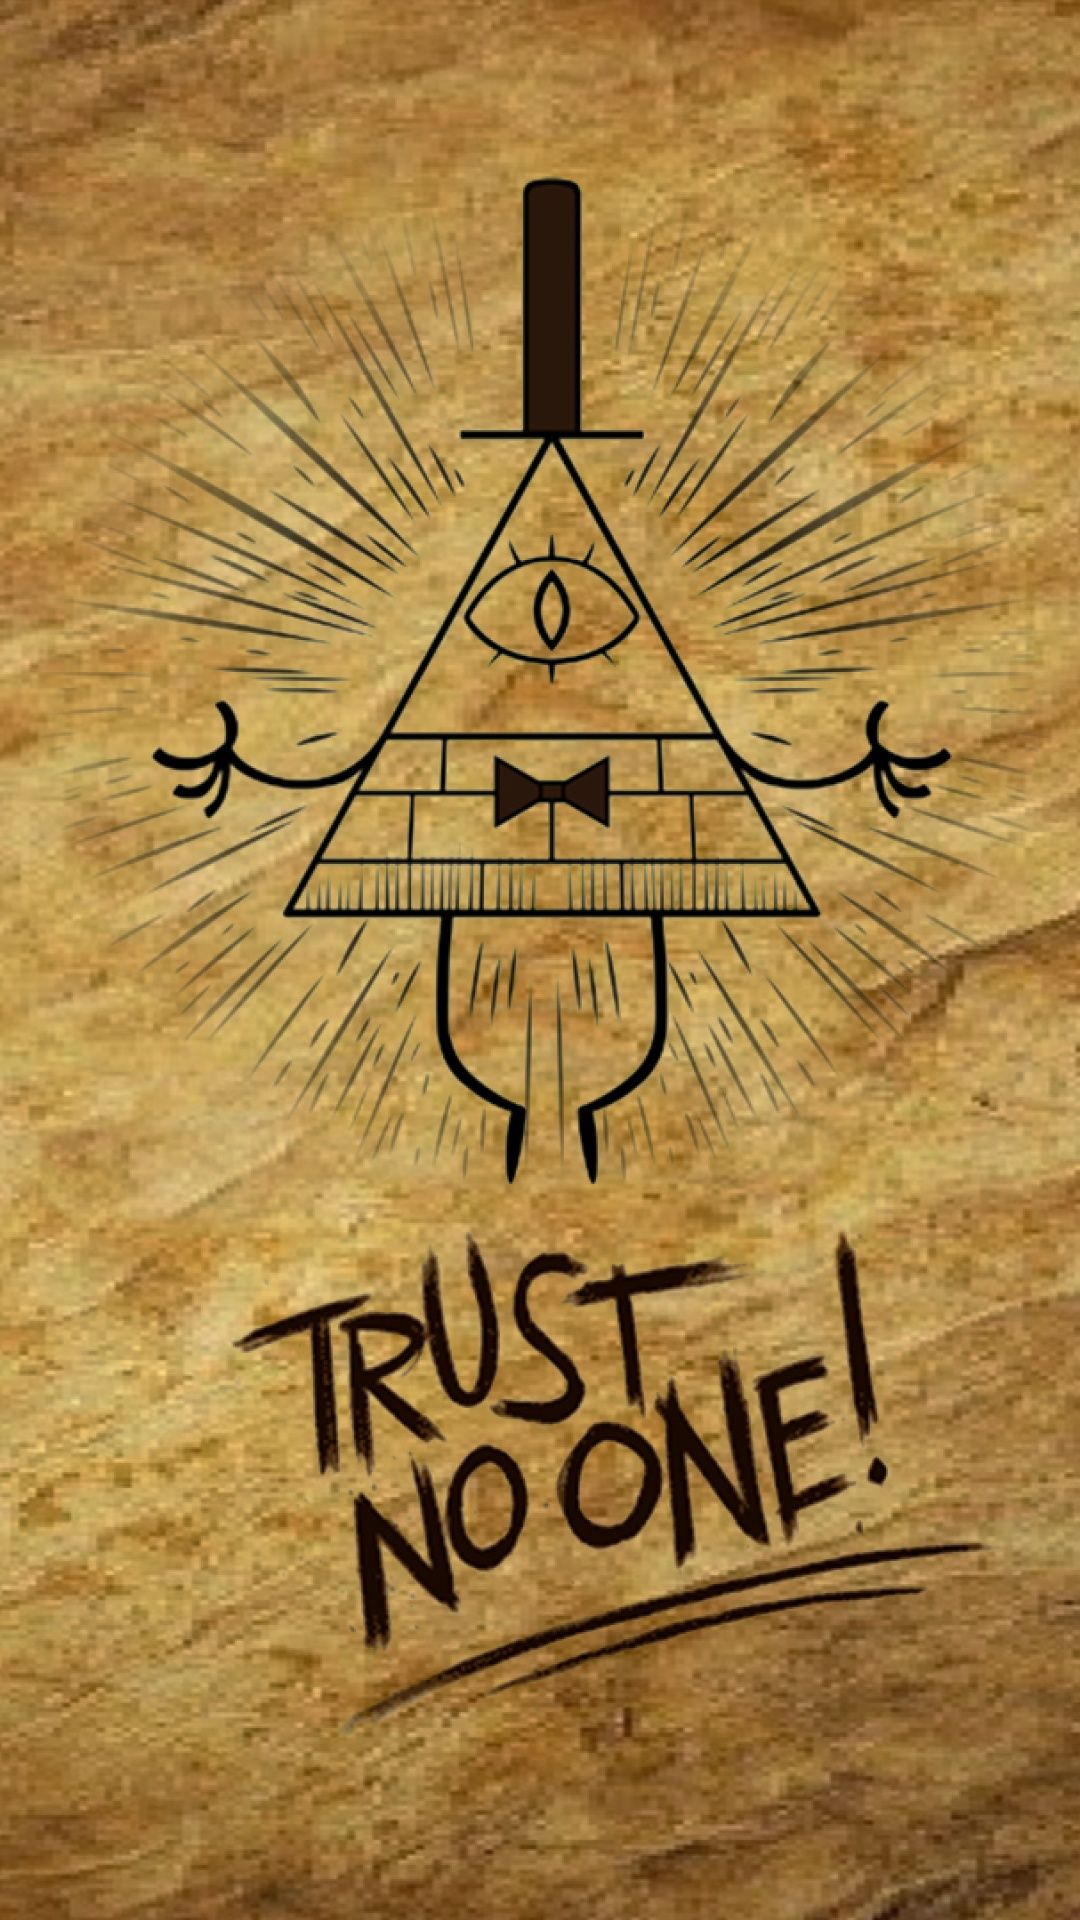 Gravity Falls Trust No One Wallpaper Gravity Falls Iphone 5 Wallpaper Id 38301 Beautiful